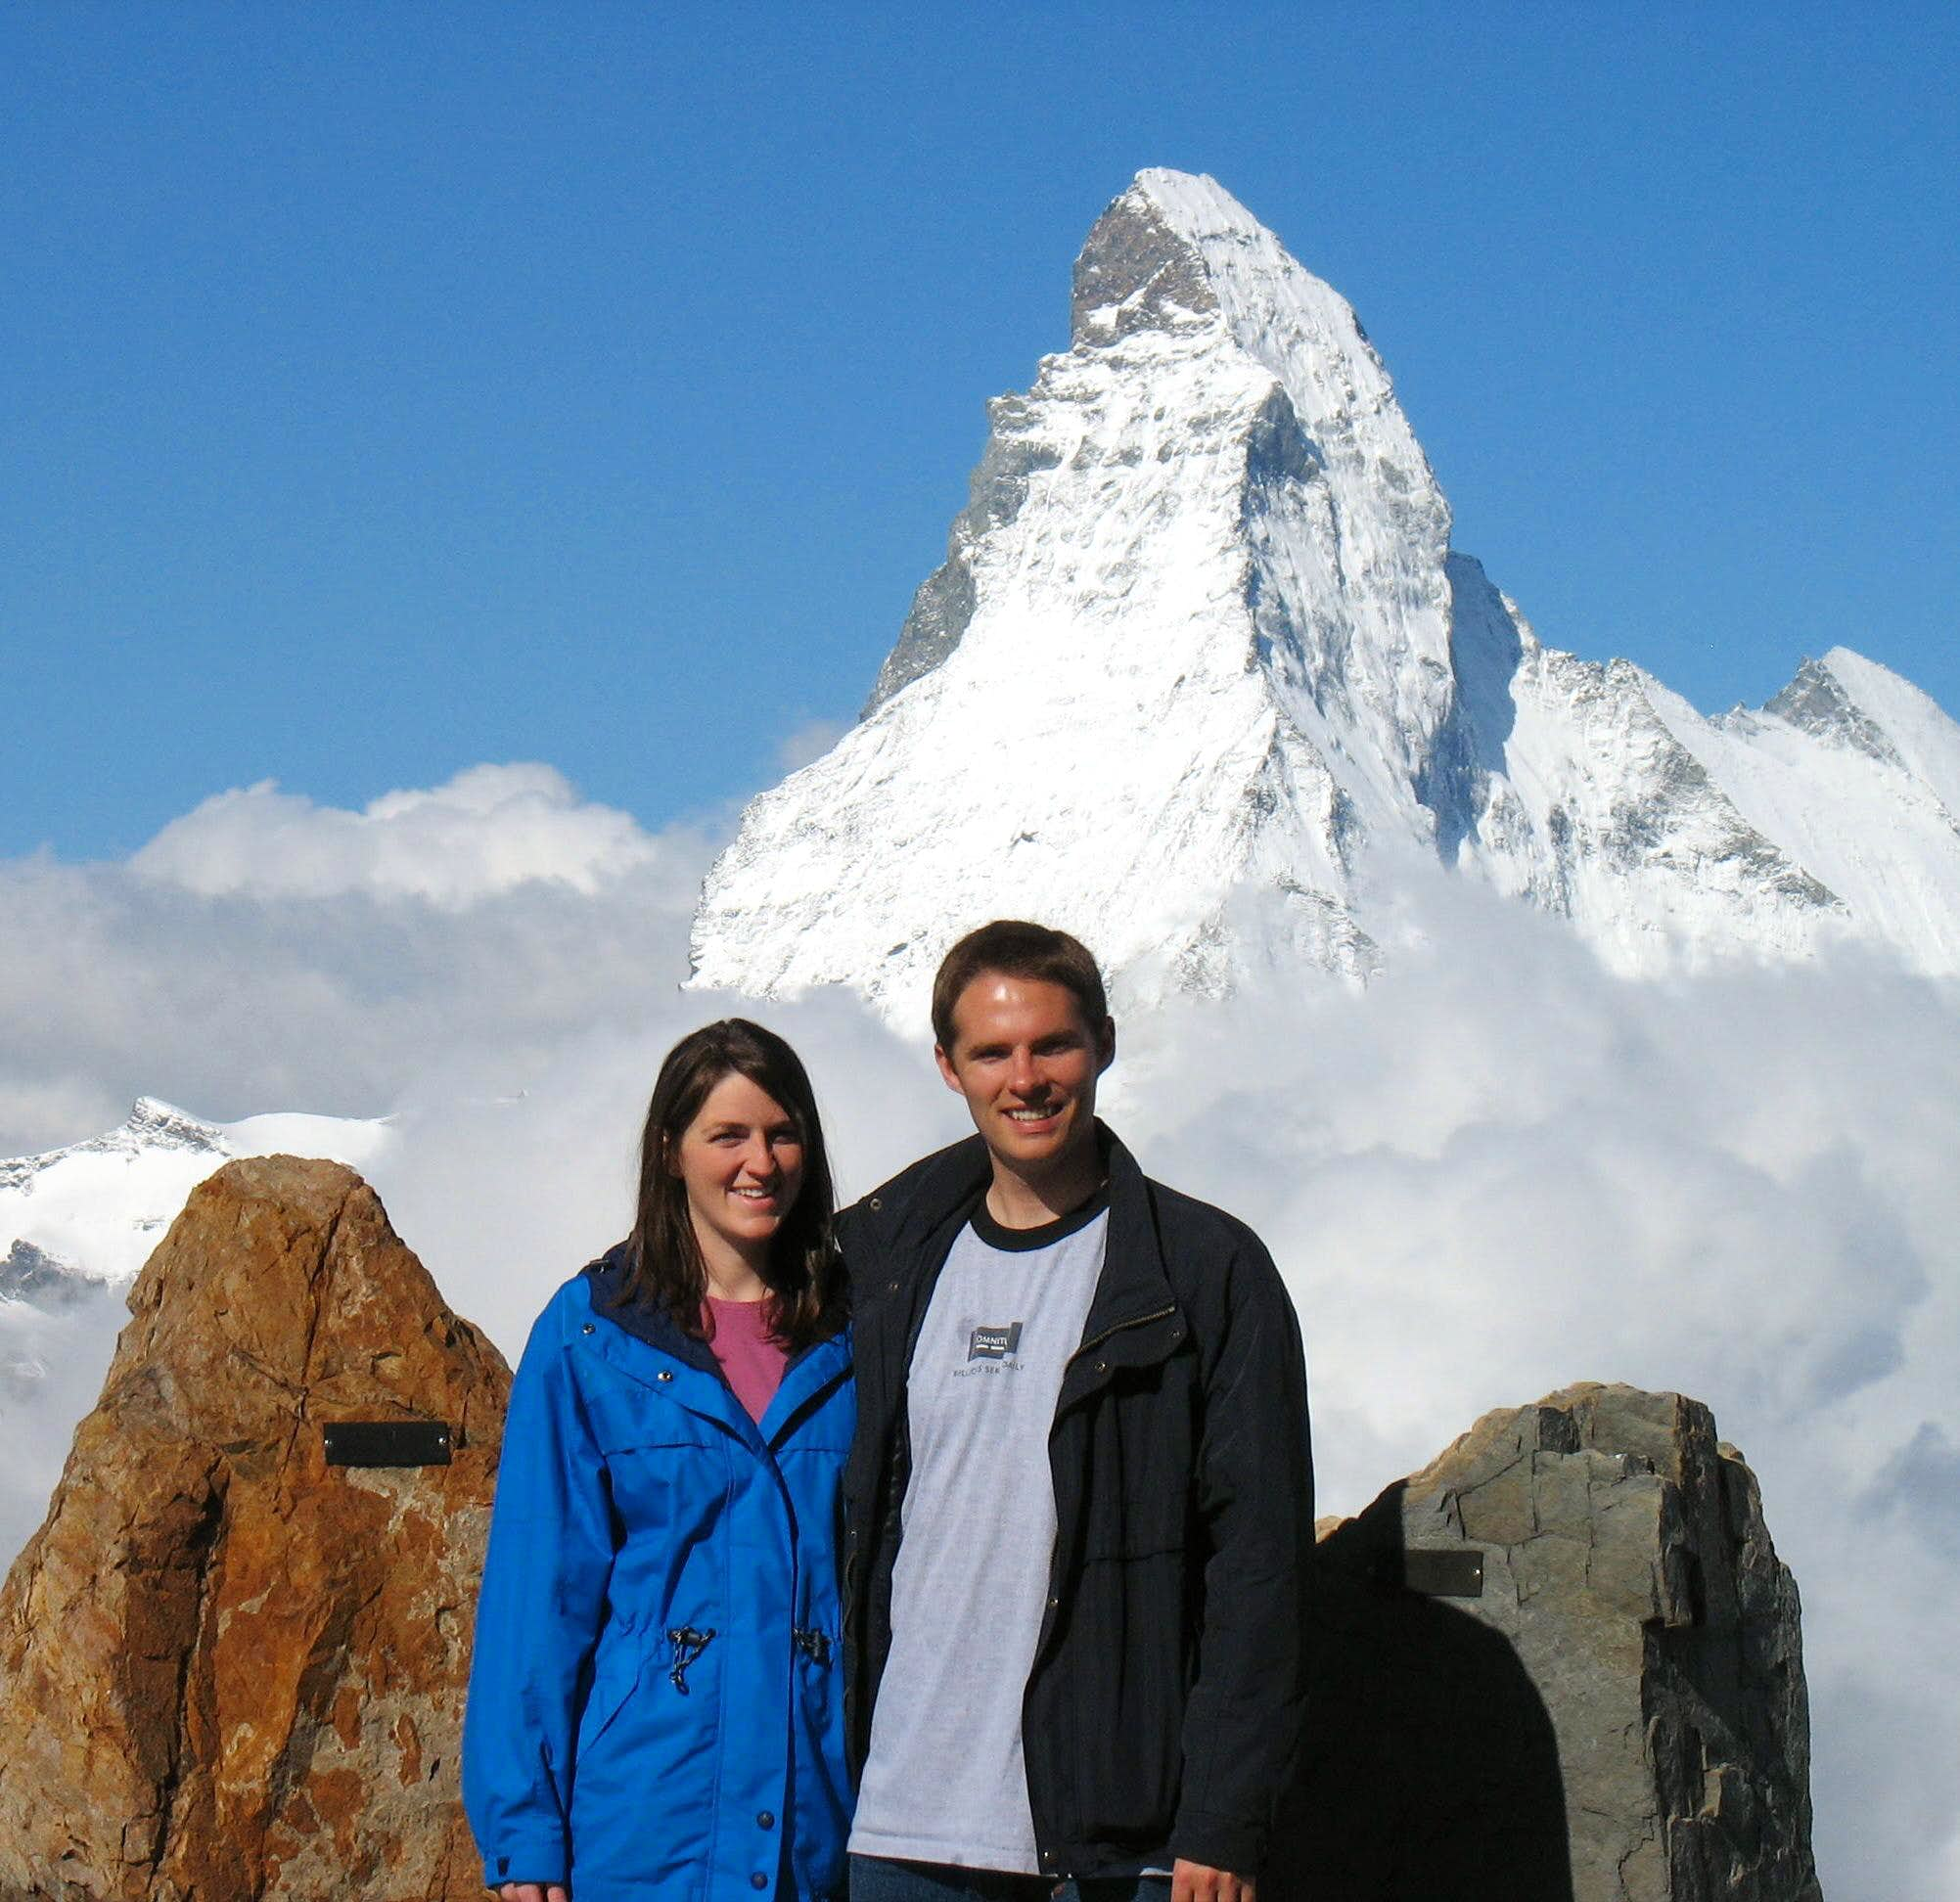 My 2007 Switzerland Photos